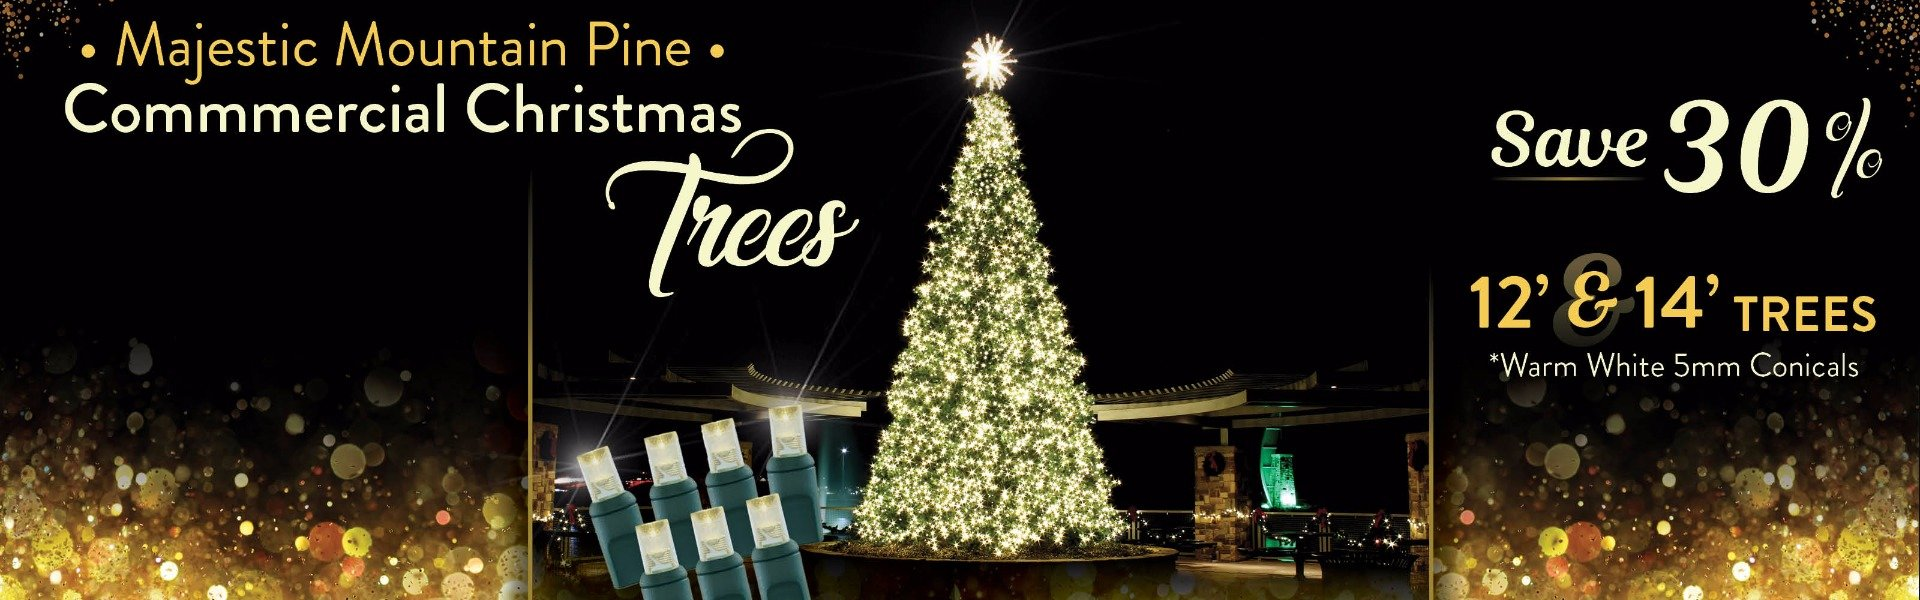 12' and 14' Majestic Mountain Pine Commercial Christmas Tree Save 30% on Warm White 5mm Conicals